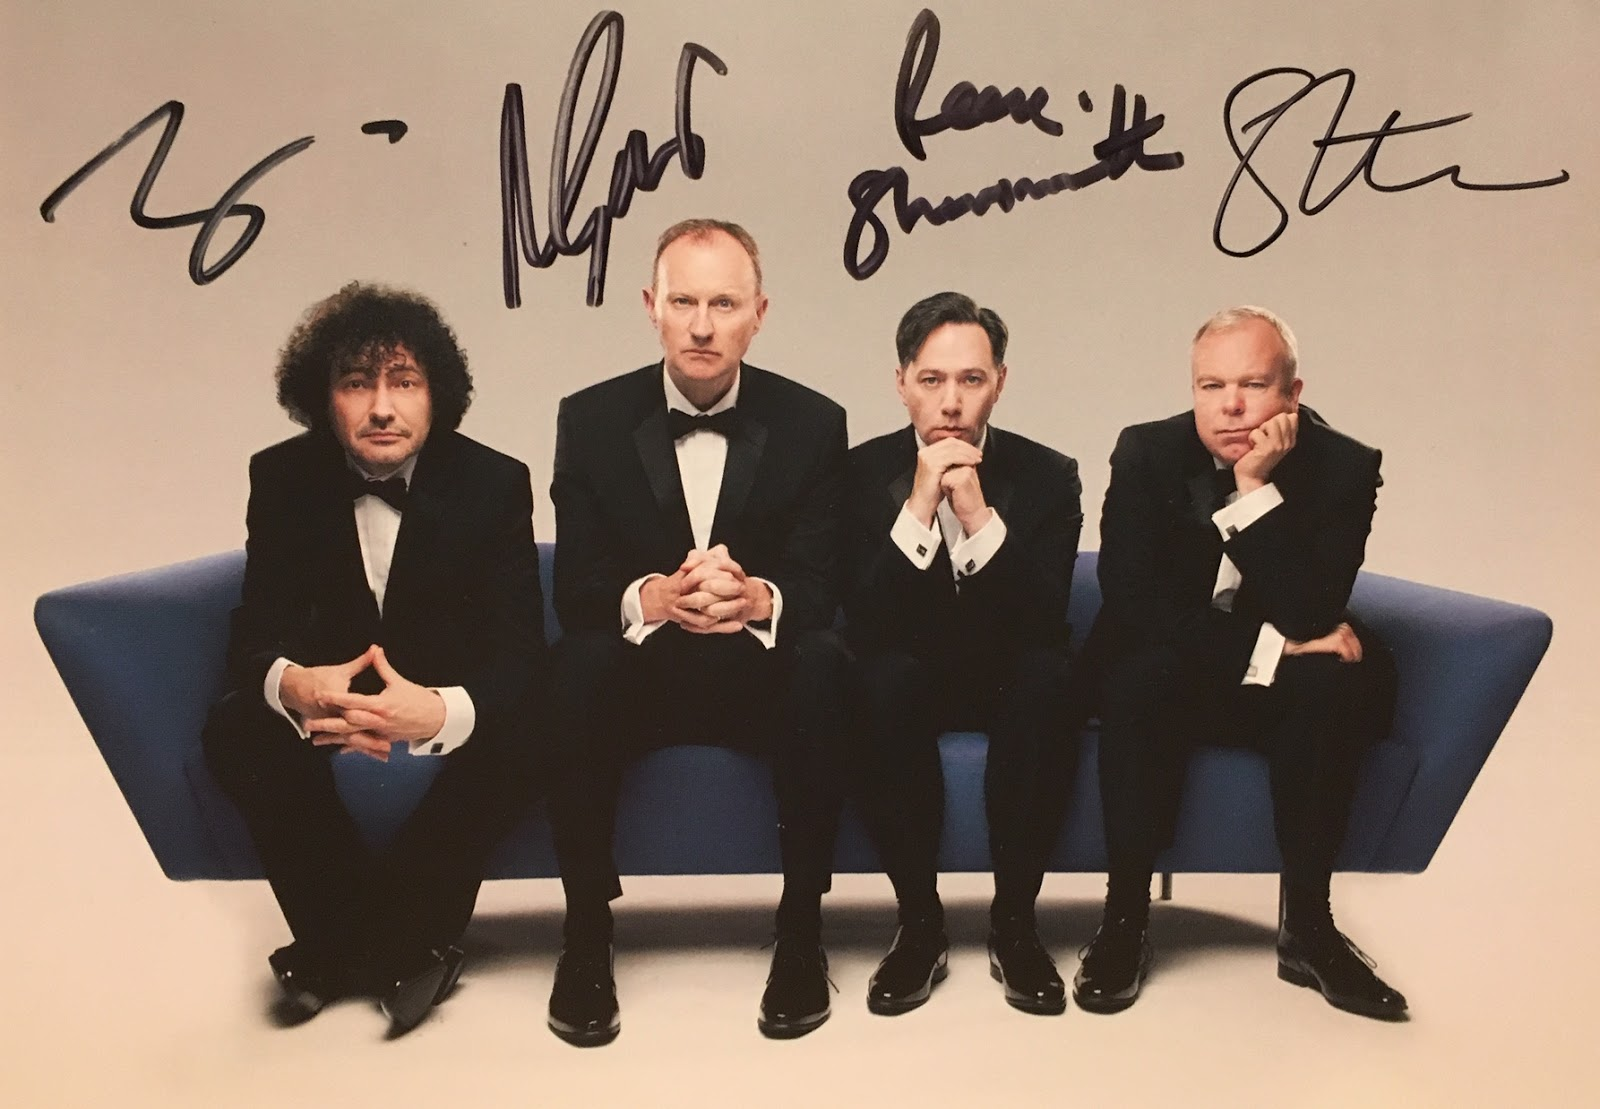 Celebrity Signings: The League of Gentlemen (Too much stuff